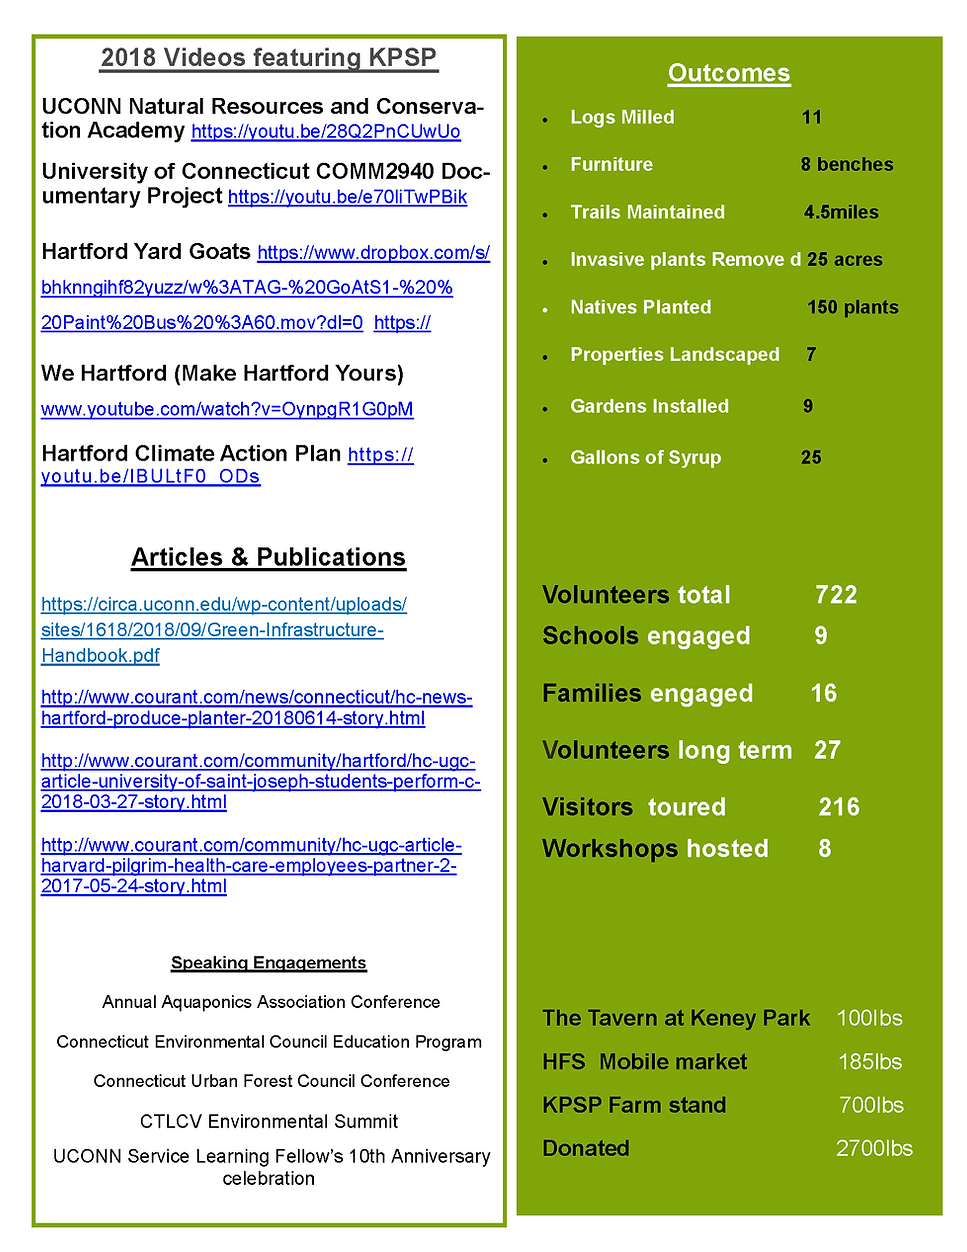 2018 annual report_Page_4.png